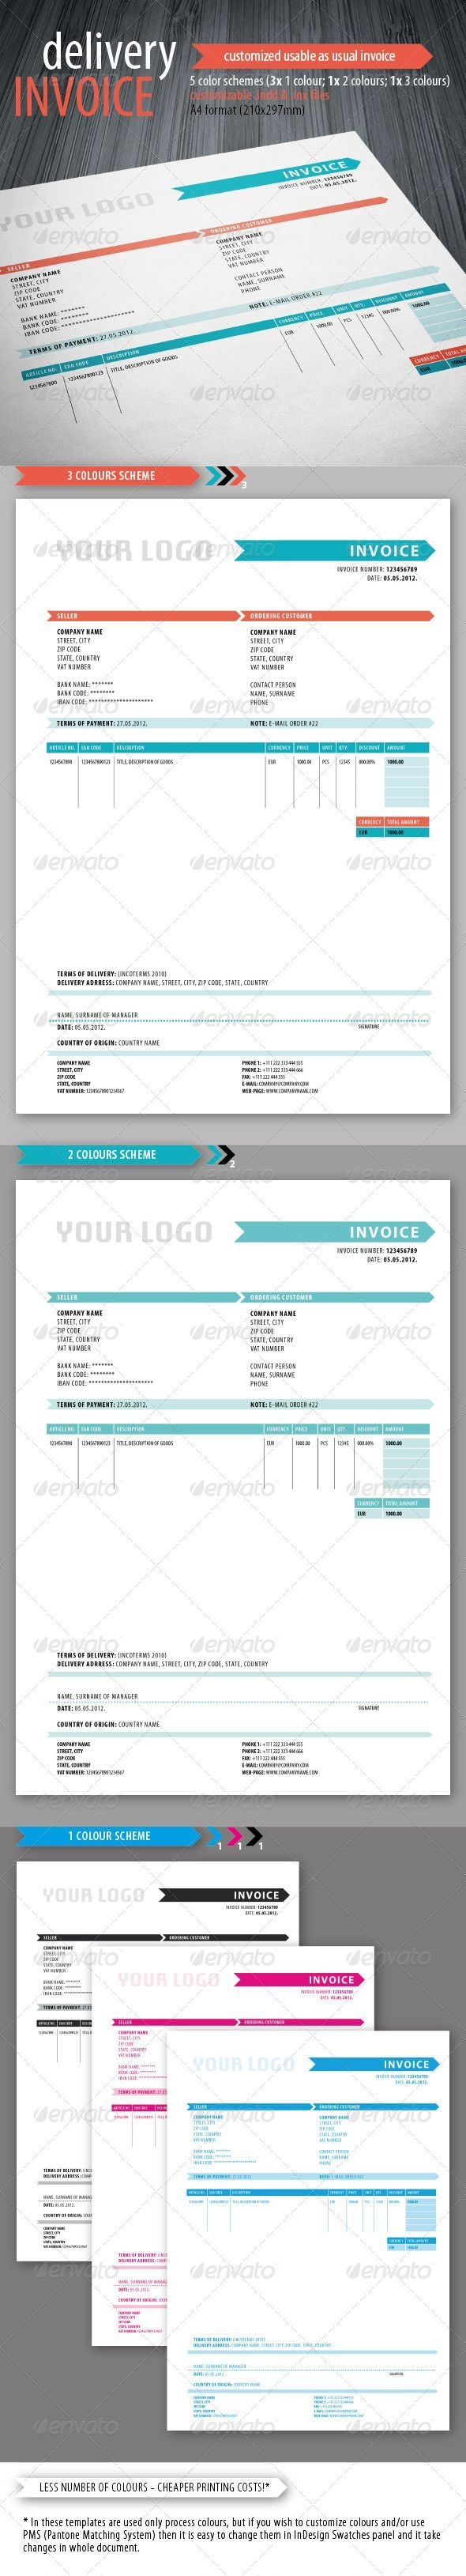 indesign invoice template delivery invoice template proposals amp invoice template indesign 590 X 3259